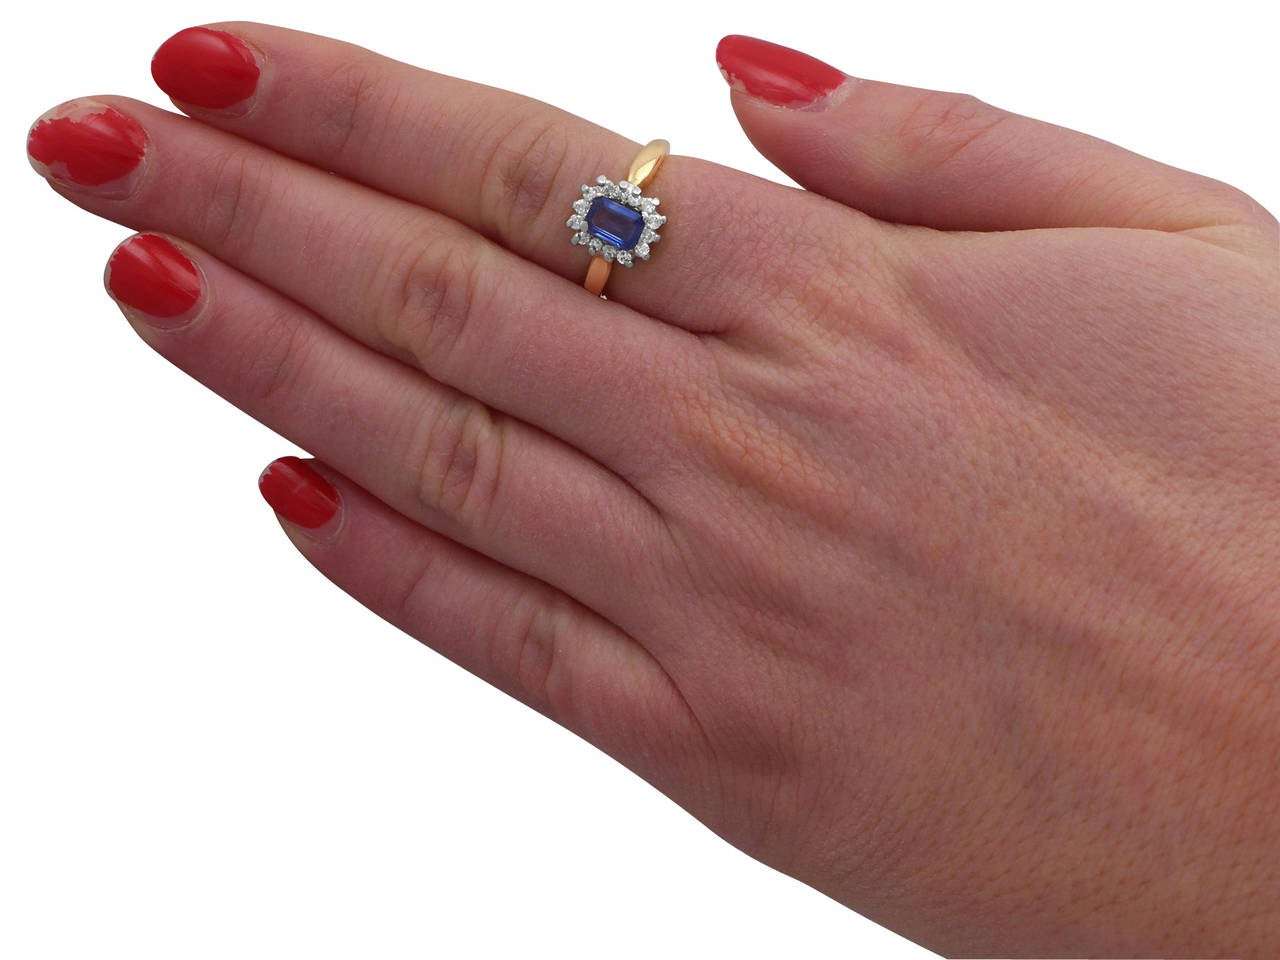 0.48Ct Sapphire & 0.35Ct Diamond, 18k Yellow Gold Cluster Ring - Vintage 7